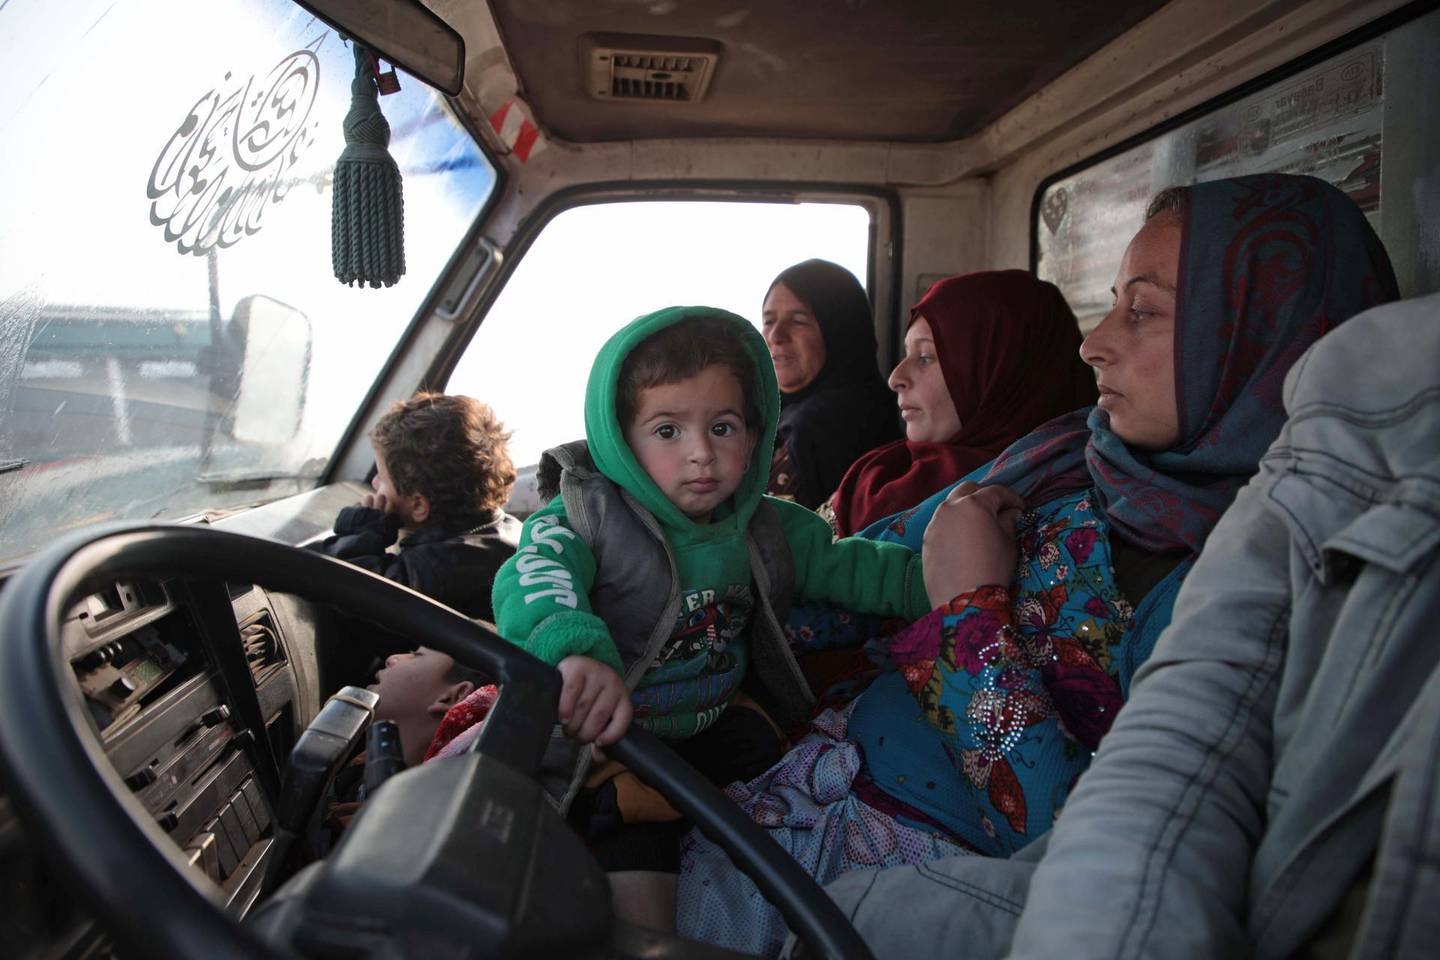 Syrians sit in a vehicle as they drive towards the northern areas of Syria's Idlib province near the Syrian-Turkish border as they flee the bombardments in the southern areas of the country's last major opposition bastion, on December 20, 2019. / AFP / Aaref WATAD